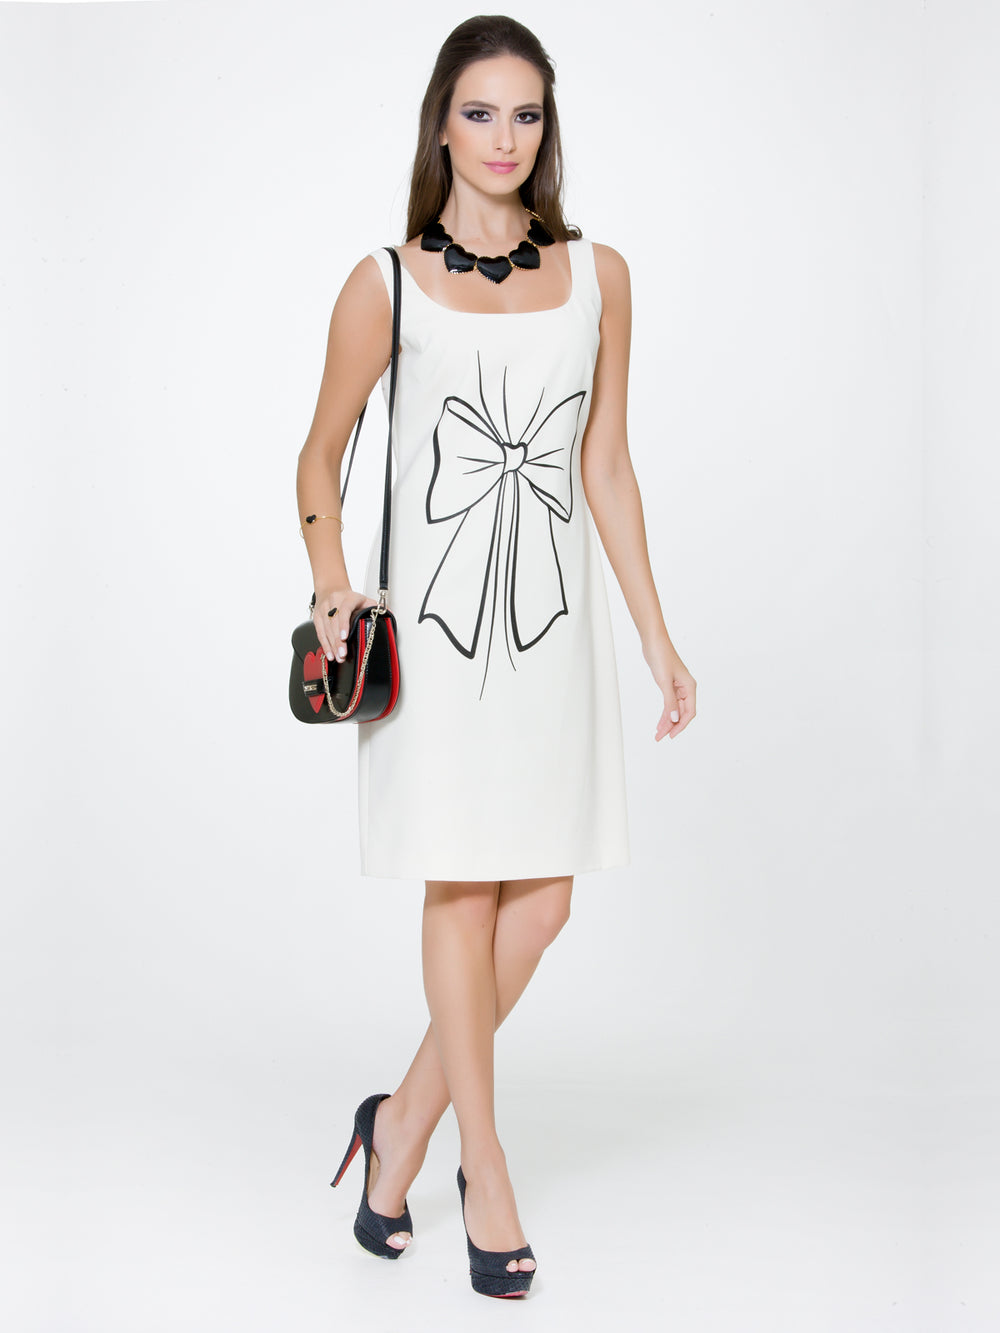 Off-White Bow Print Dress, BOUTIQUE MOSCHINO - elilhaam.com